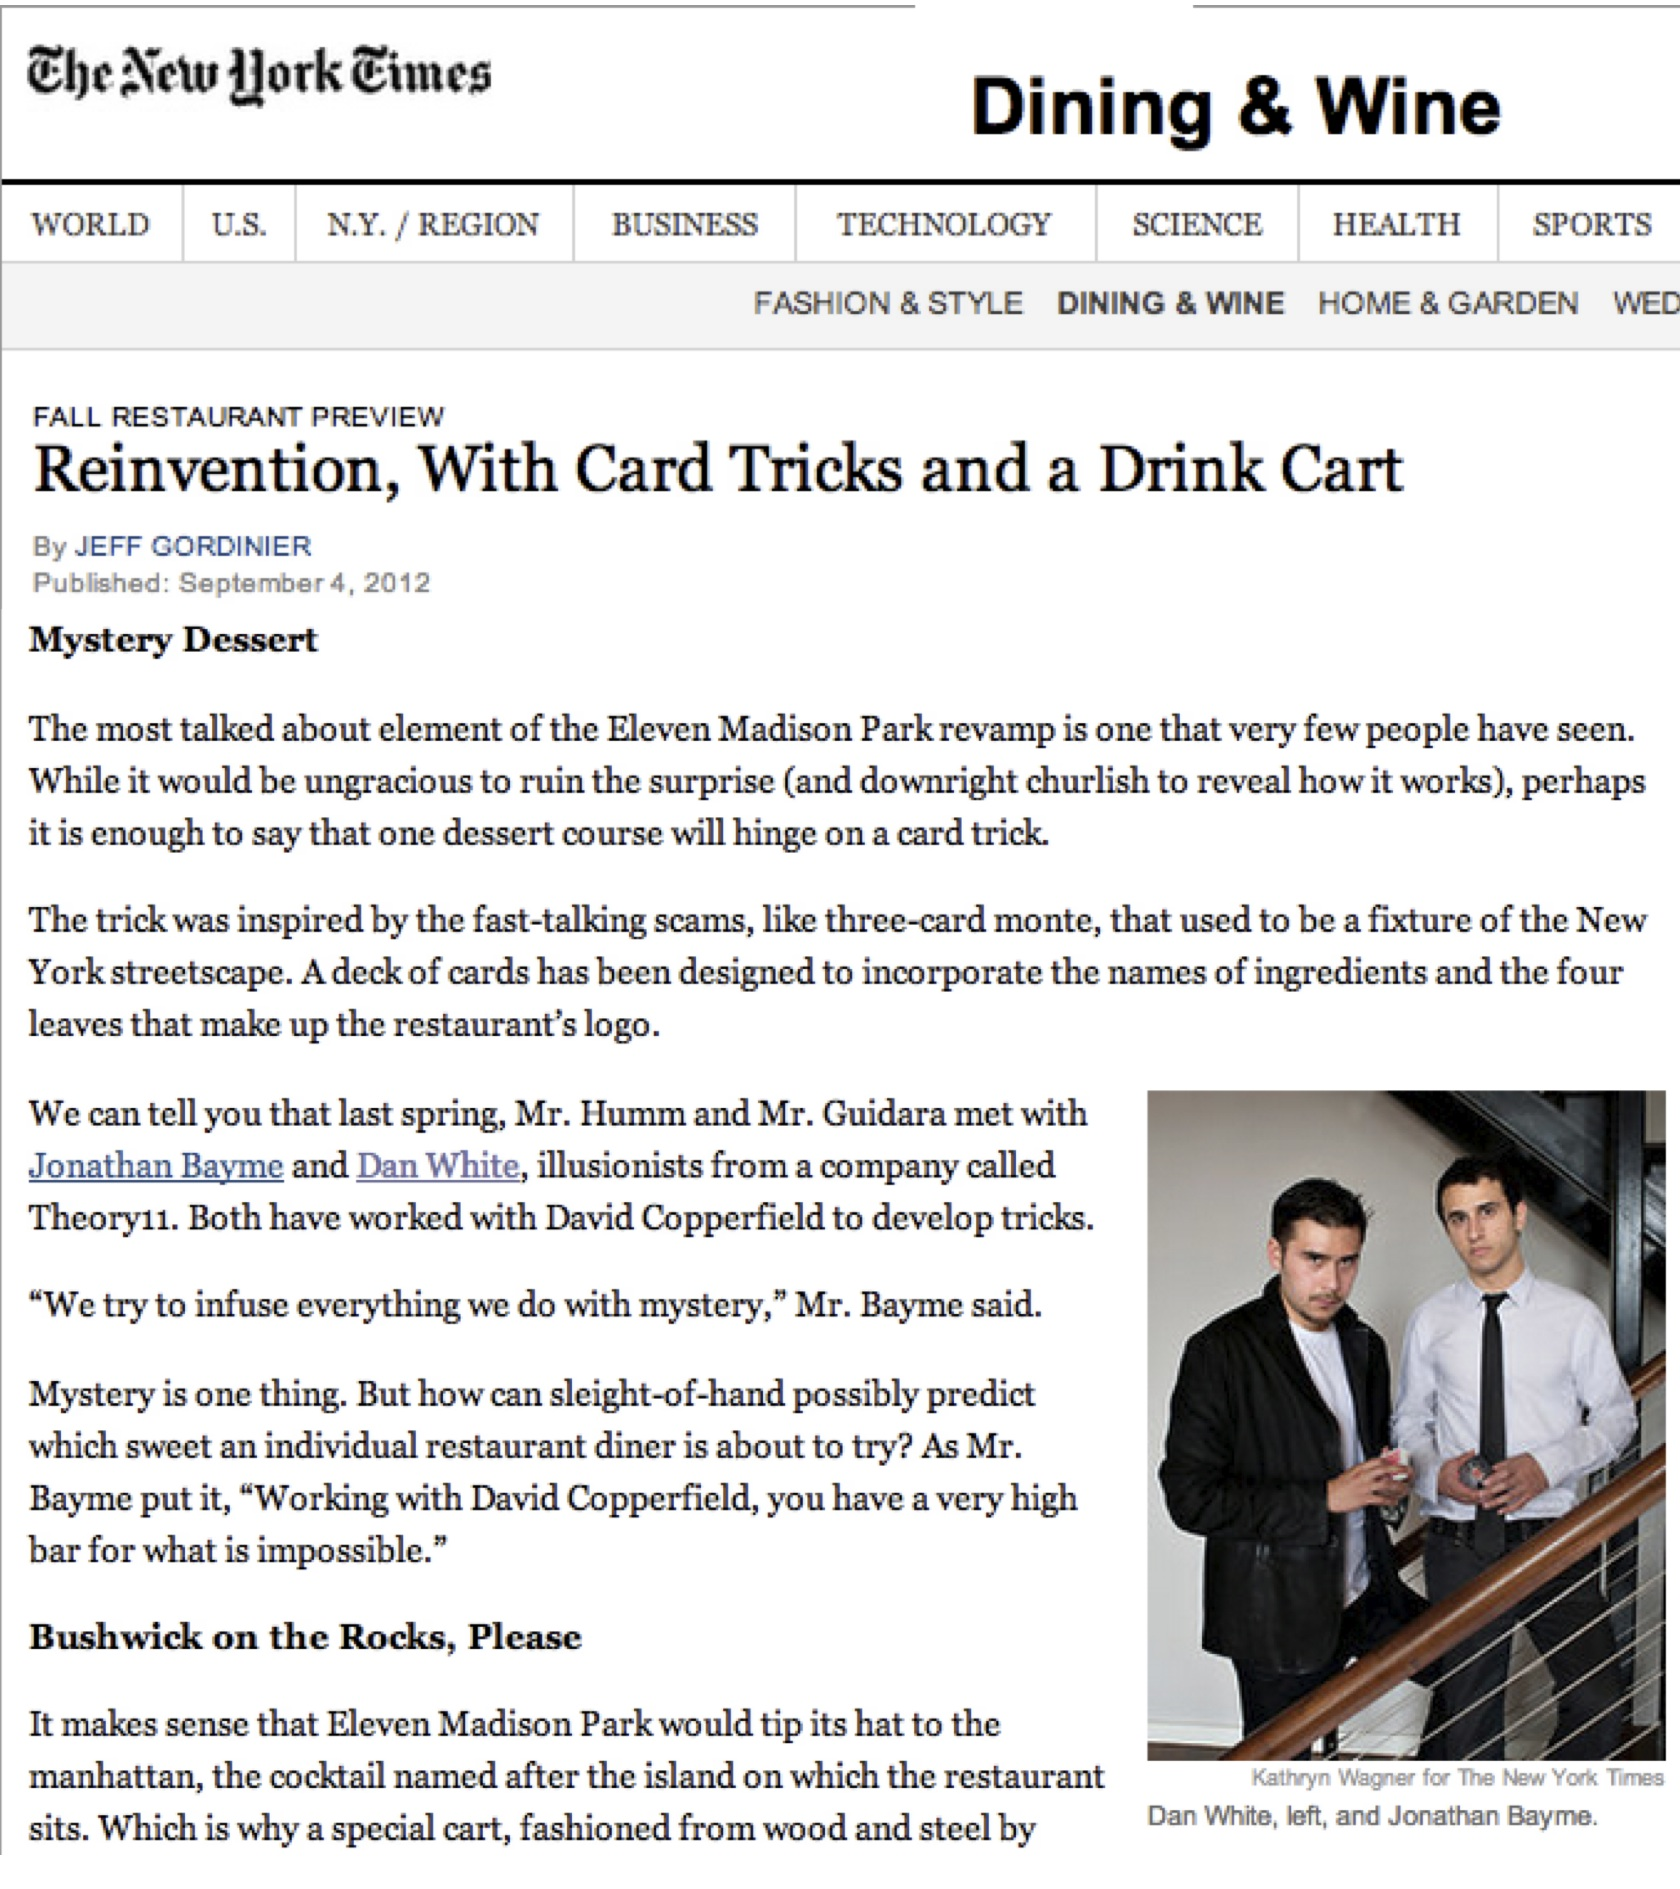 New York Times Dining and Wine: At Eleven Madison Park, A Reinvention